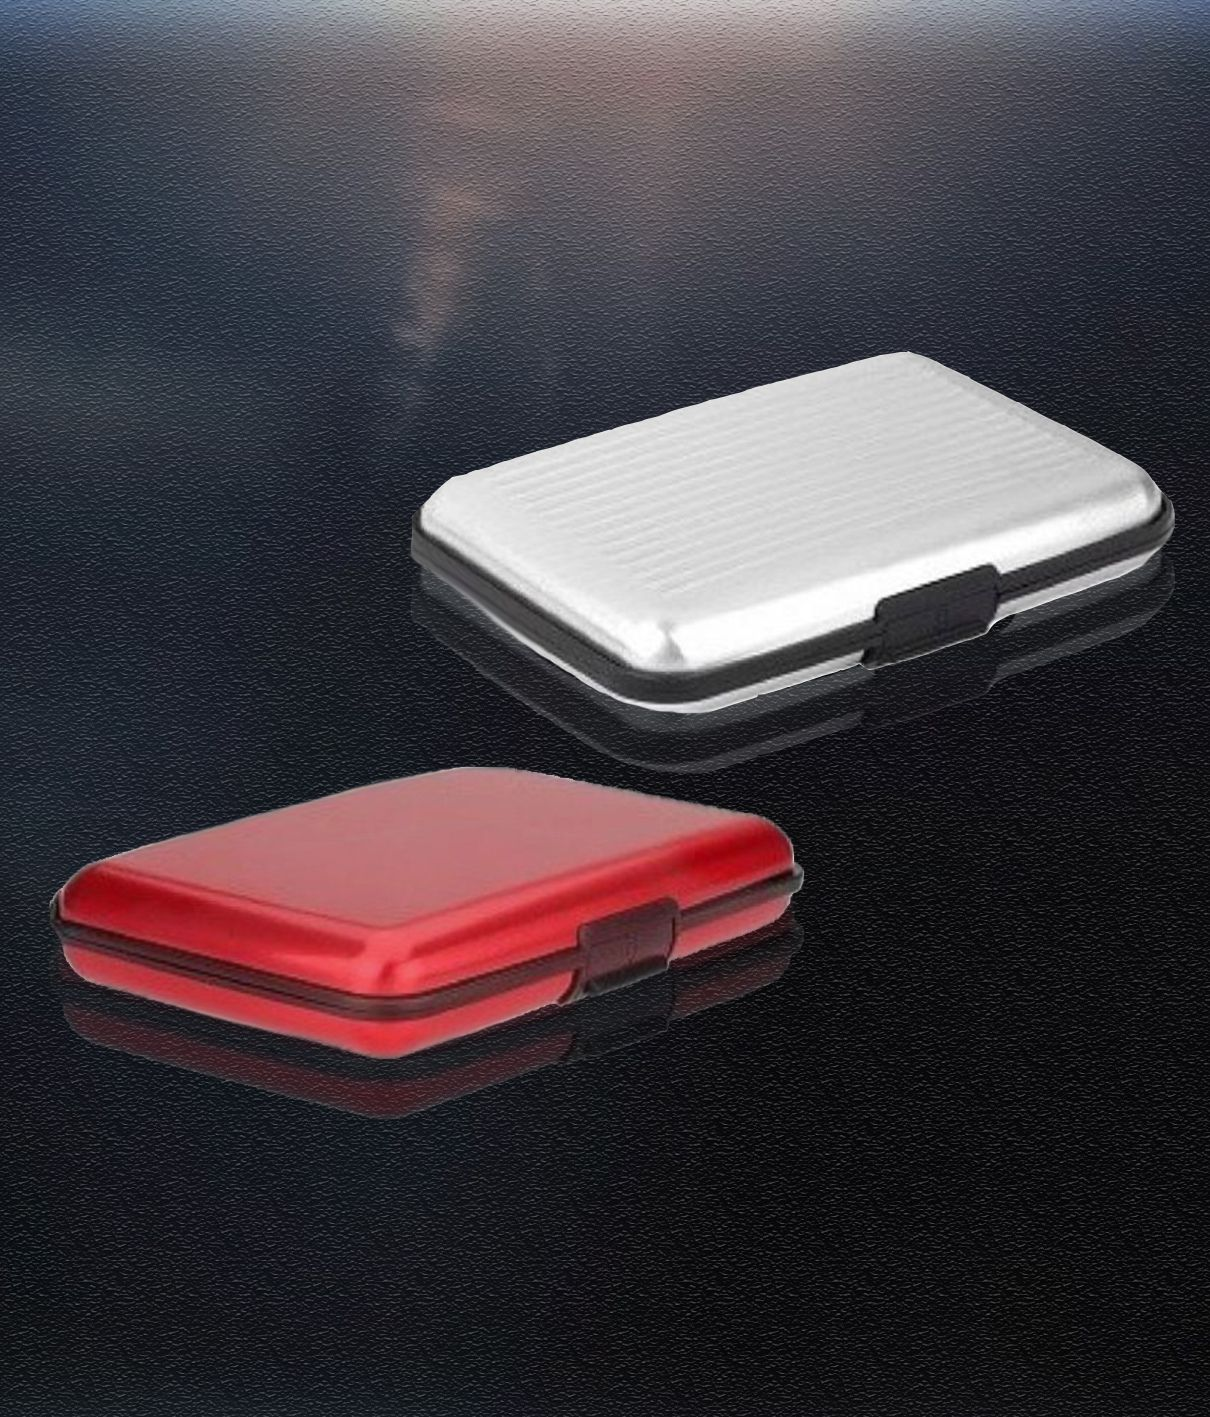 Atm card holder aluminum metal case box hard case holder business atm card holder aluminum metal case box hard case holder business card id wallet reheart Gallery